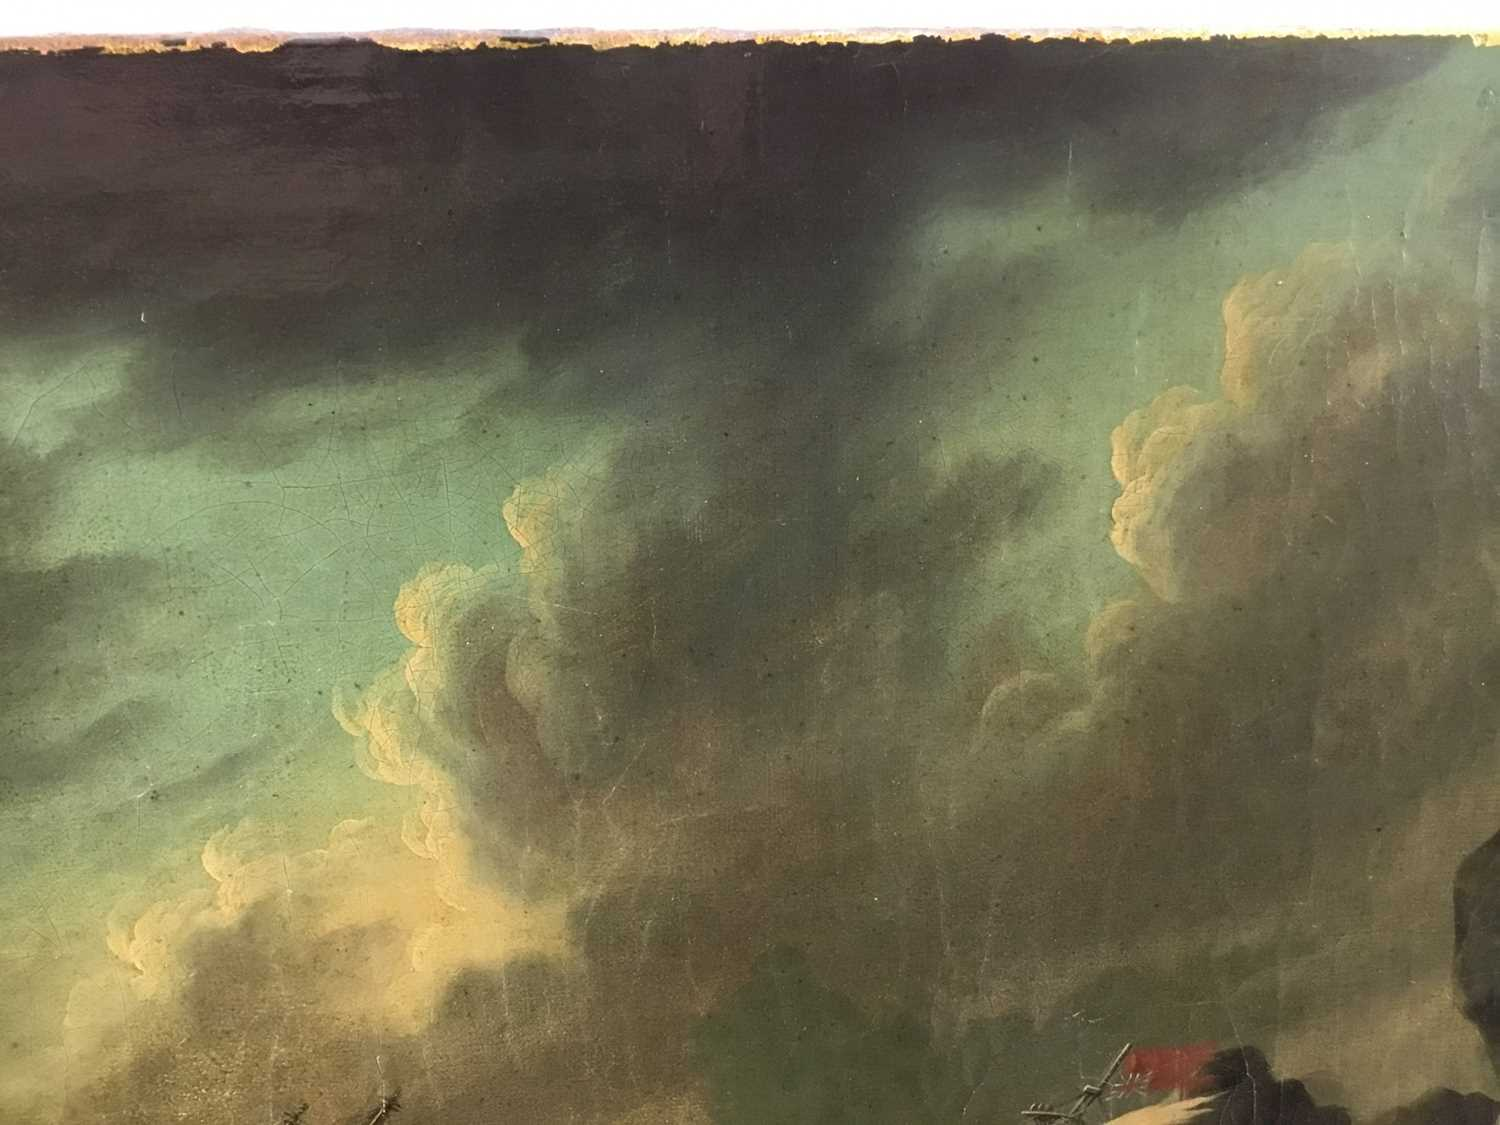 Attributed to Joseph Vernet (1714-1789) oil on canvas - shipping crashing against the rocks, 55cm x - Image 8 of 12